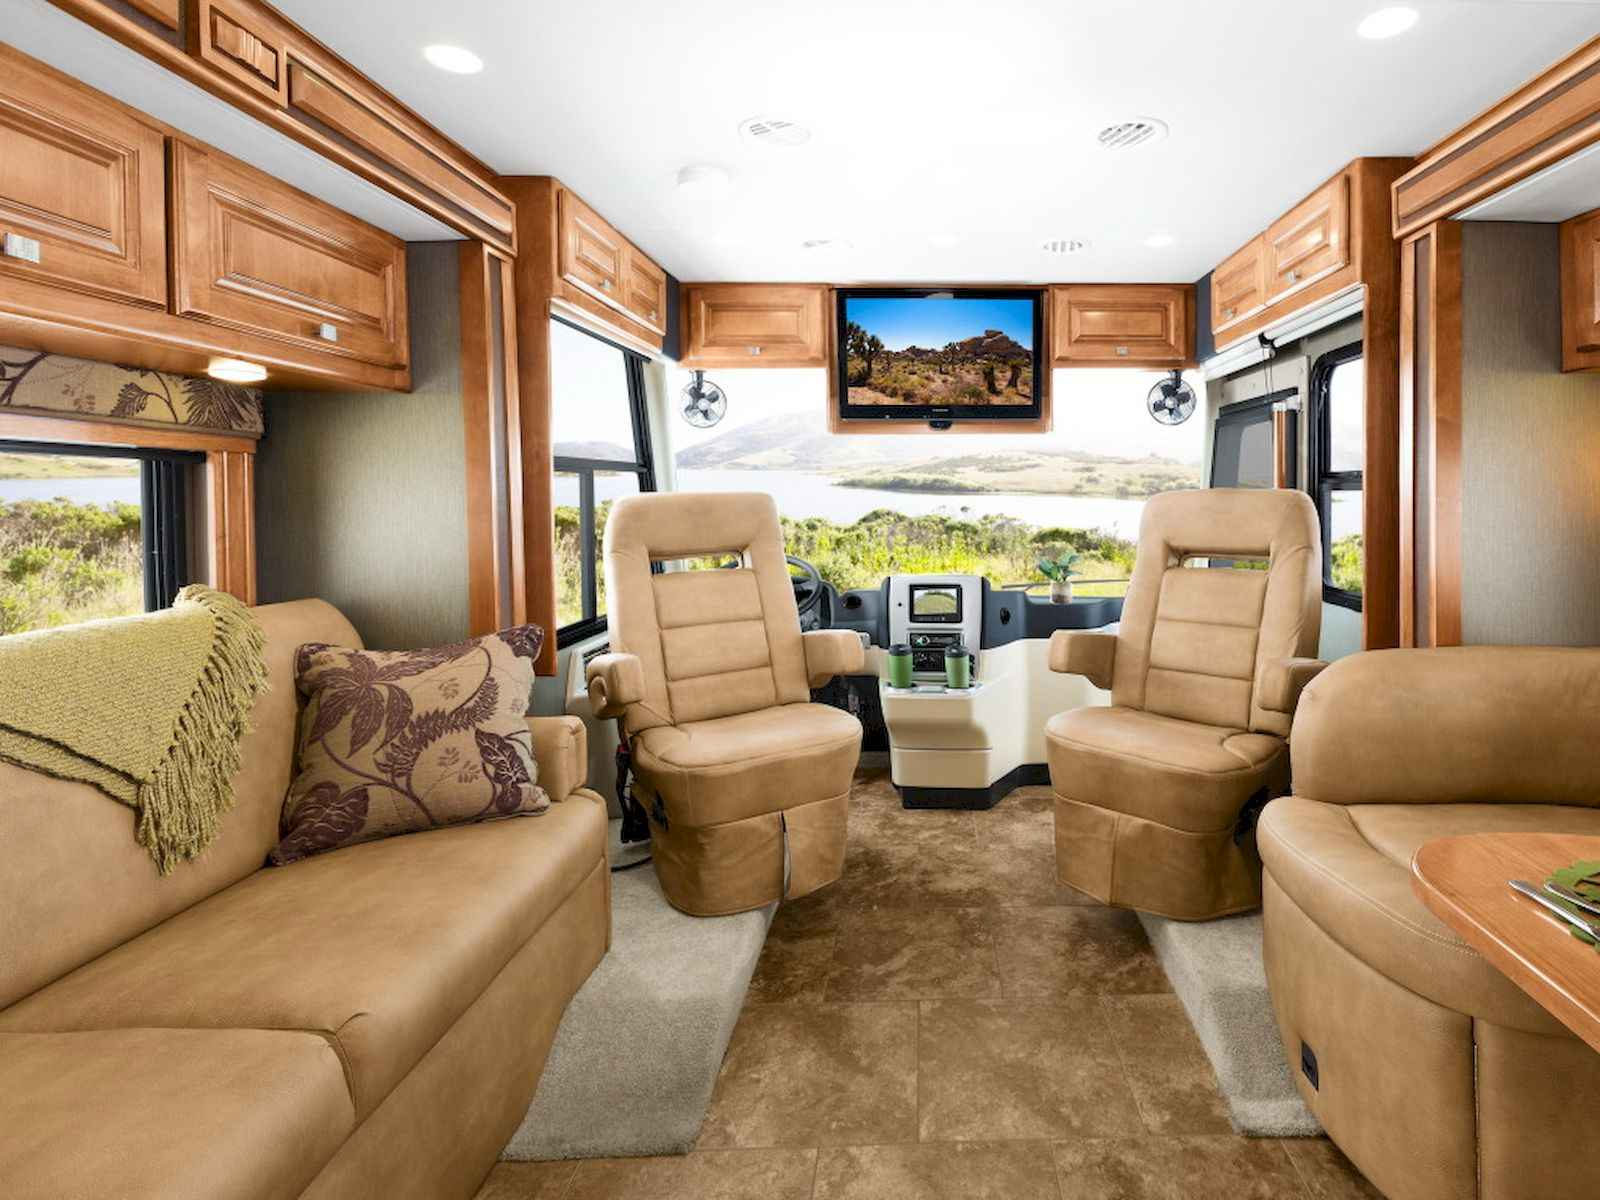 70 Stunning RV Living Camper Room Ideas Decorations Make Your Summer Awesome (15)